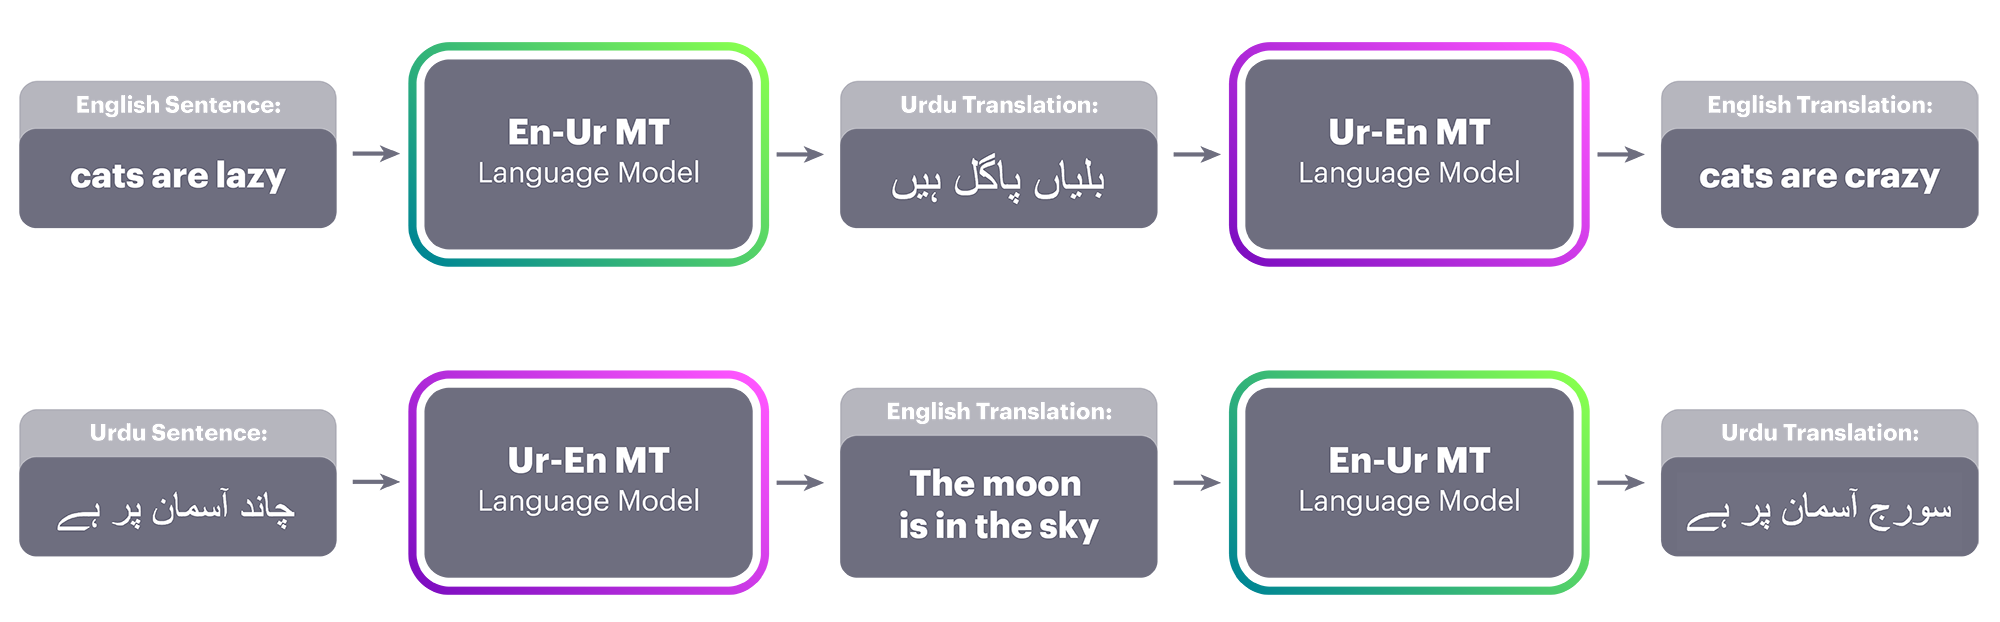 """Top: a sentence in English is translated to Urdu using the current En-Ur MT system. Next, the Ur-En MT system takes that Urdu translation as input and produces the English translation. The error between """"cats are crazy"""" and """"cats are lazy"""" is used to change the parameters such that the Ur-En MT system is more likely to output the correct sentence at the next iteration. Bottom: The same process in reverse, using the Ur-En MT system to provide data for the En-Ur MT system."""